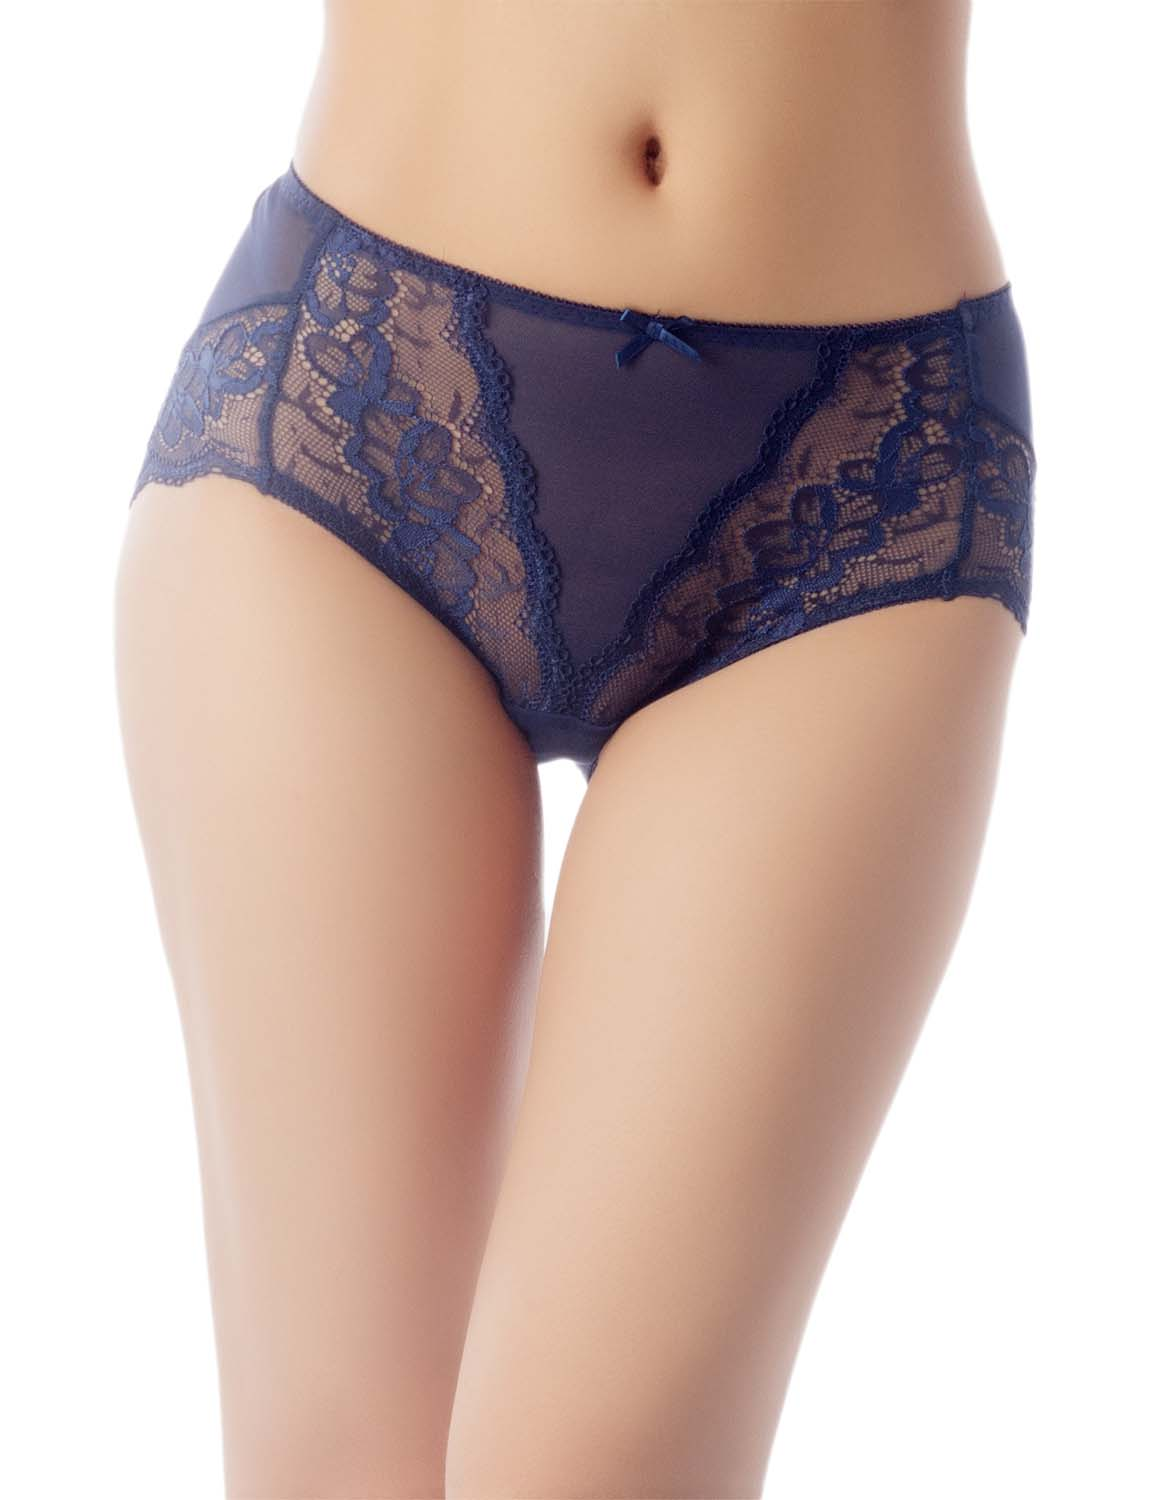 Women's Underwear Sheer Lace See-Through Bowknot Mid Waist Hipster Panty, Size: 2XL, Navy